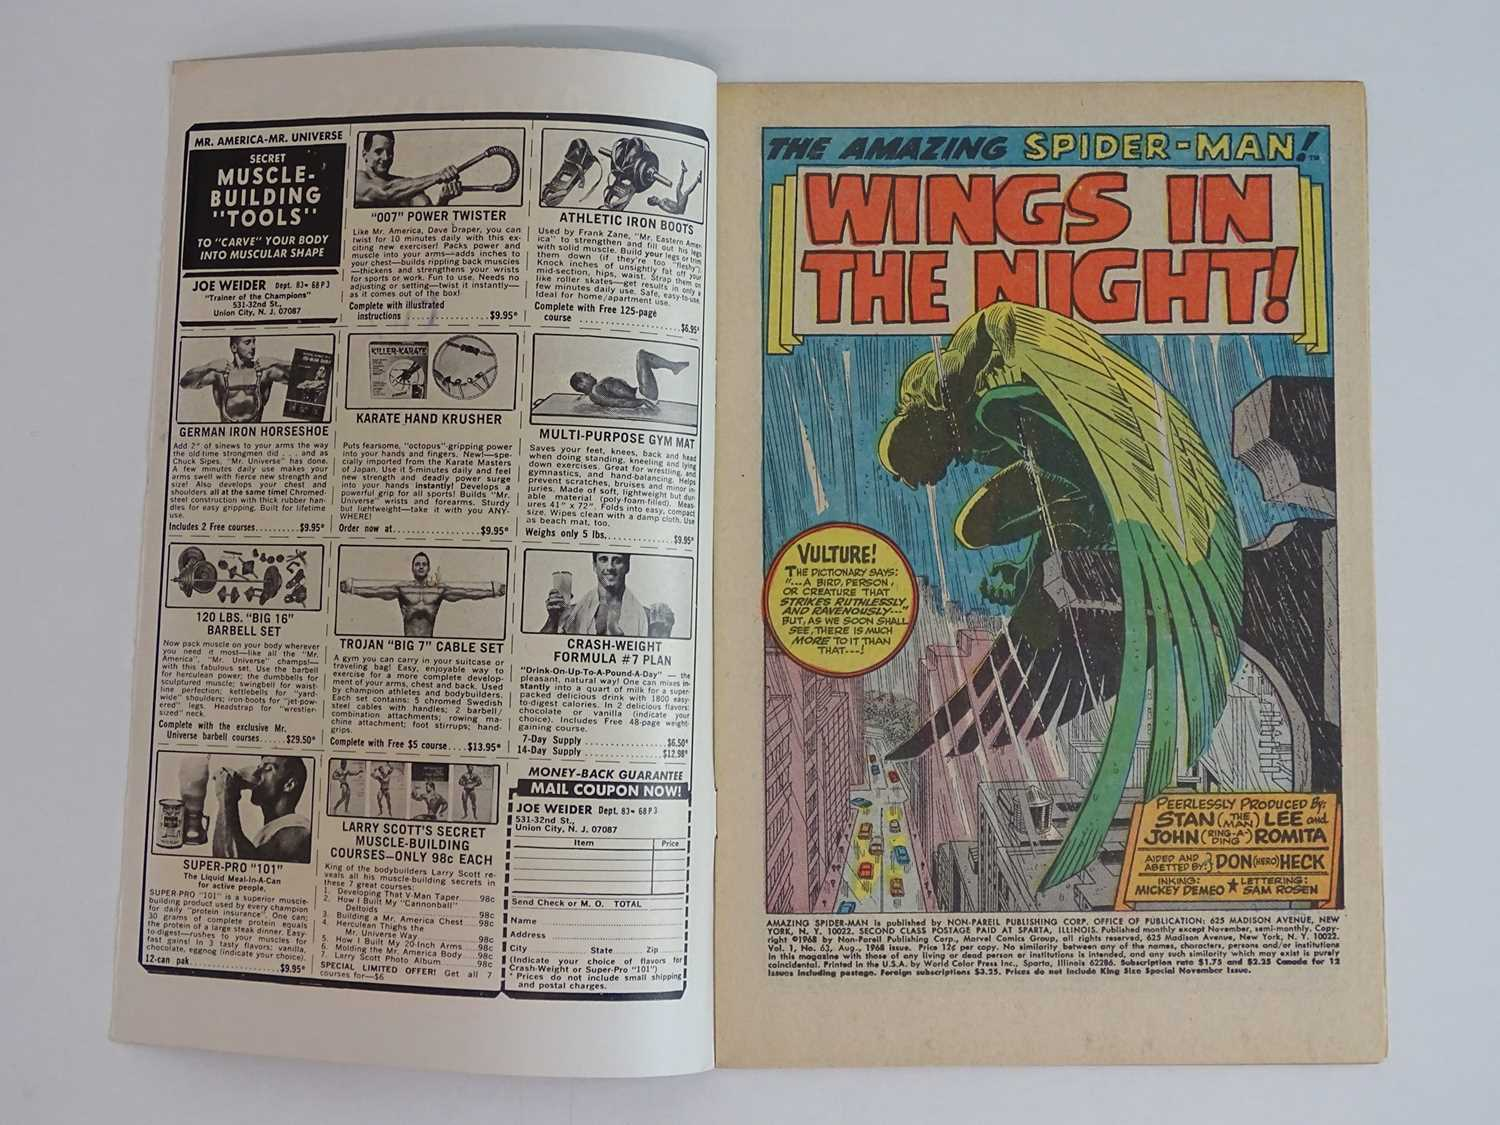 AMAZING SPIDER-MAN #63 - (1968 - MARVEL - UK Cover Price) - The original Vulture (Adrian Toomes) and - Image 3 of 9